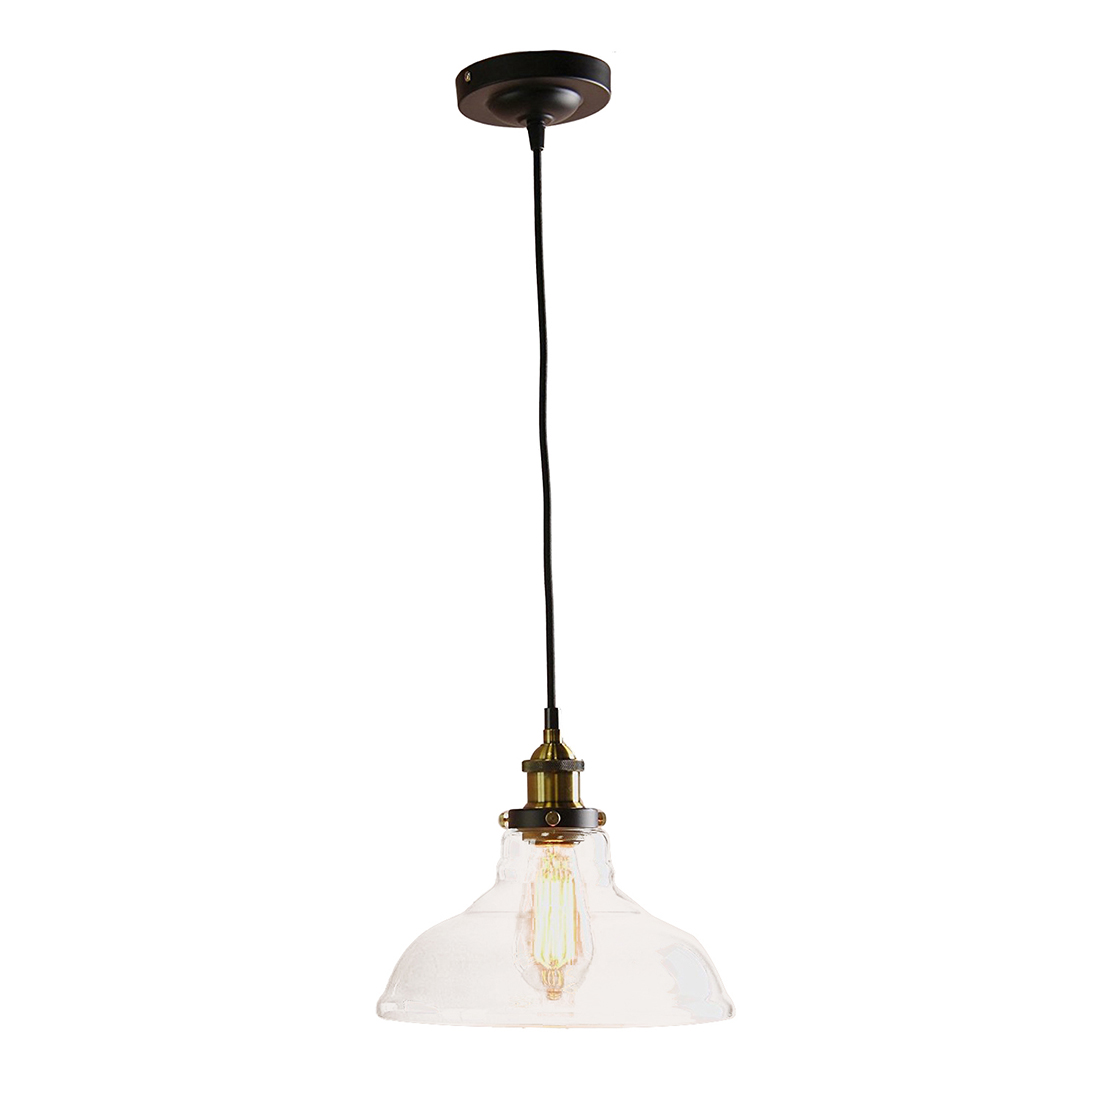 Modern Vintage Industrial 1 Light Iron Body Glass Shade Loft Coffee Bar Kitchen cover Chandeliers Hanging Pendant Lamp Light